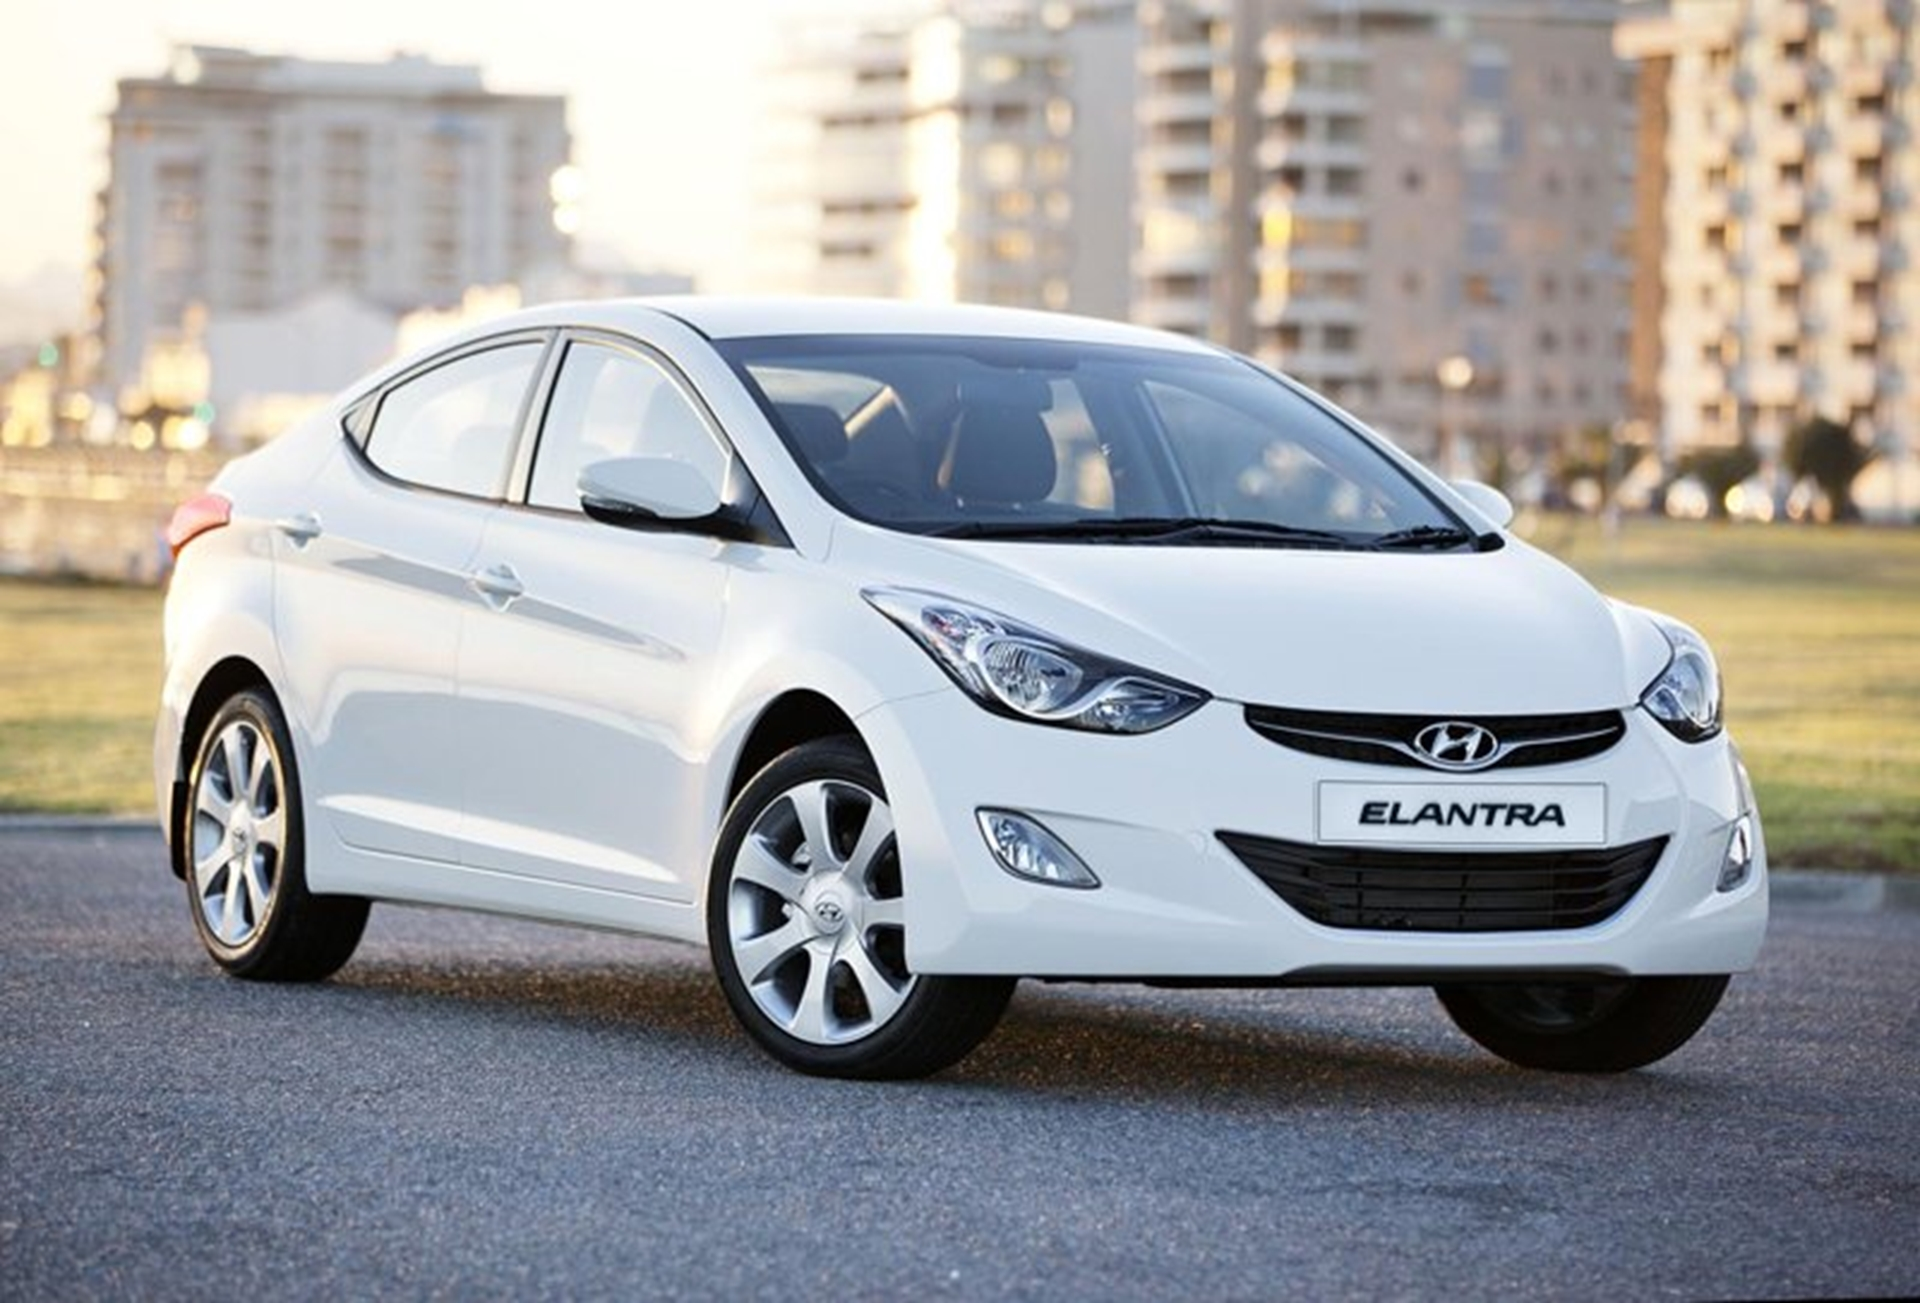 More refined new Elantra engines up the power, but works frugally